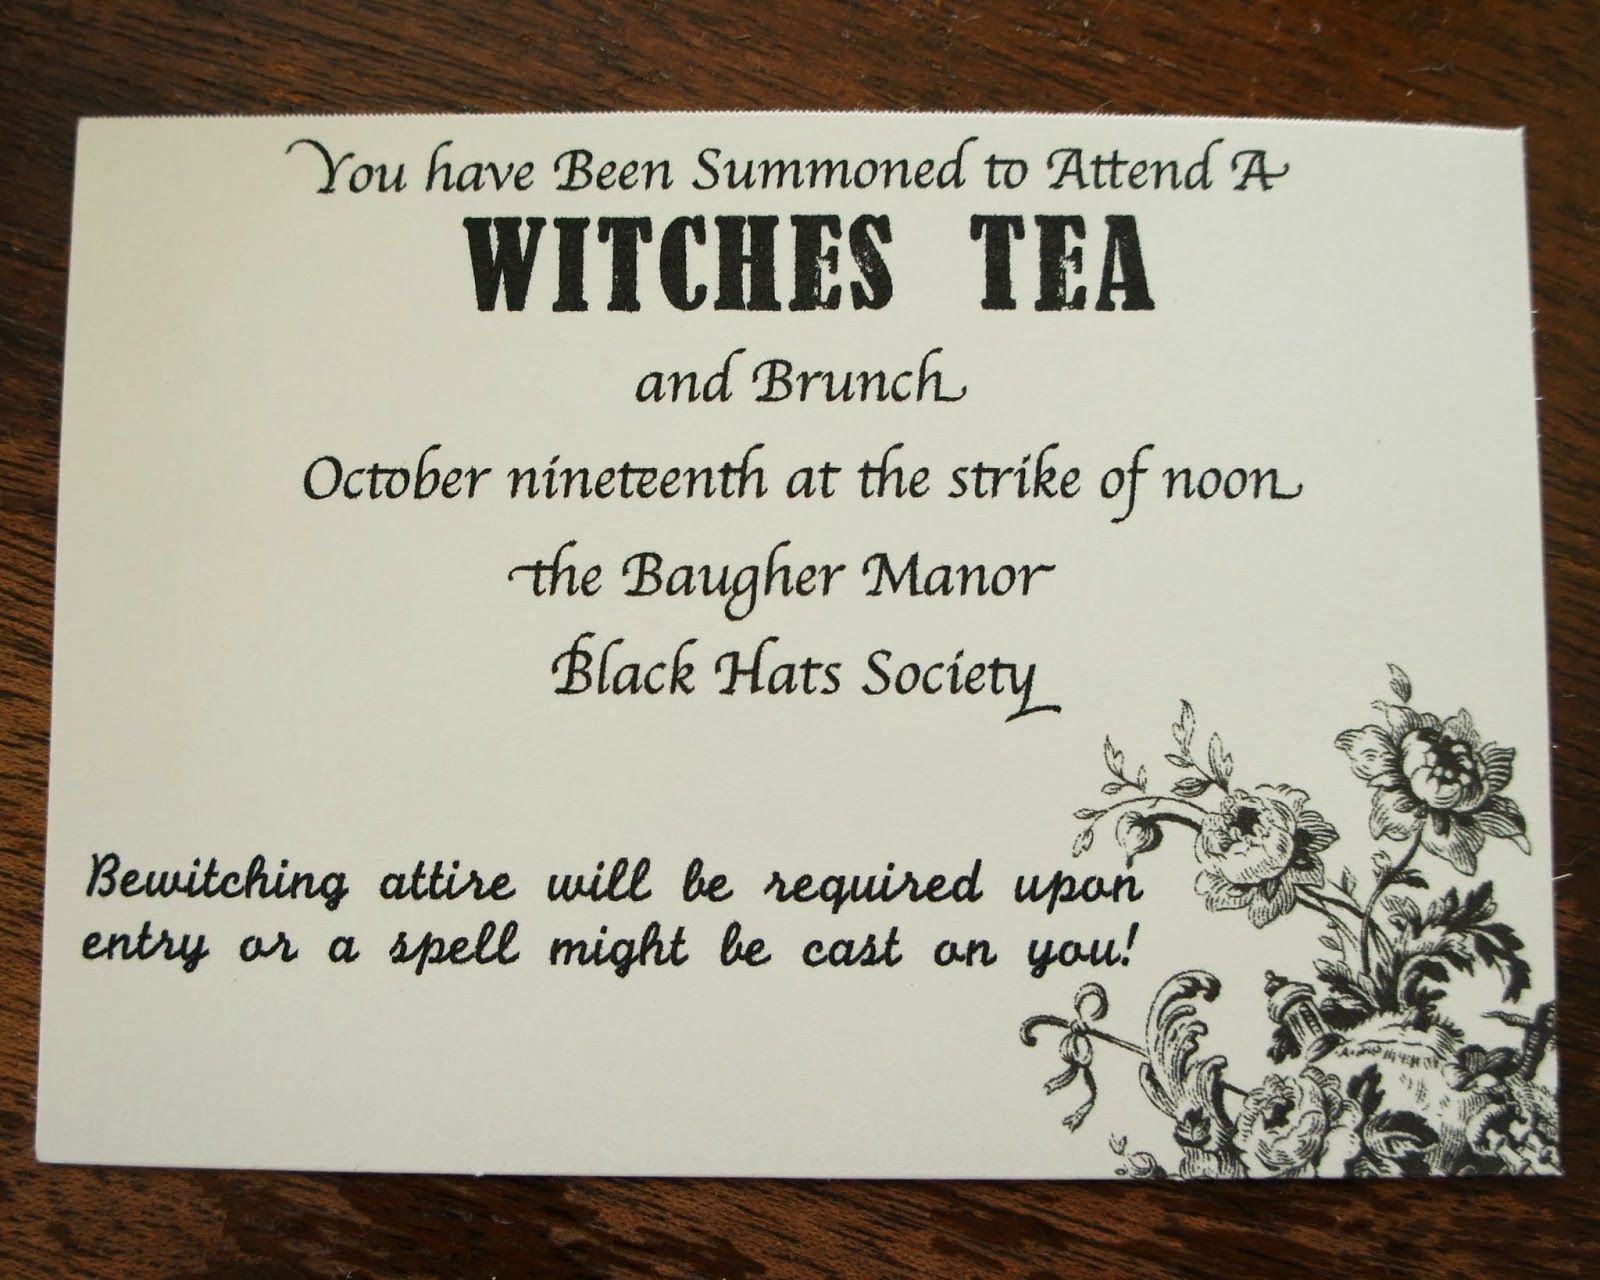 Witches tea party decor and invitation inspiration | Tea parties ...